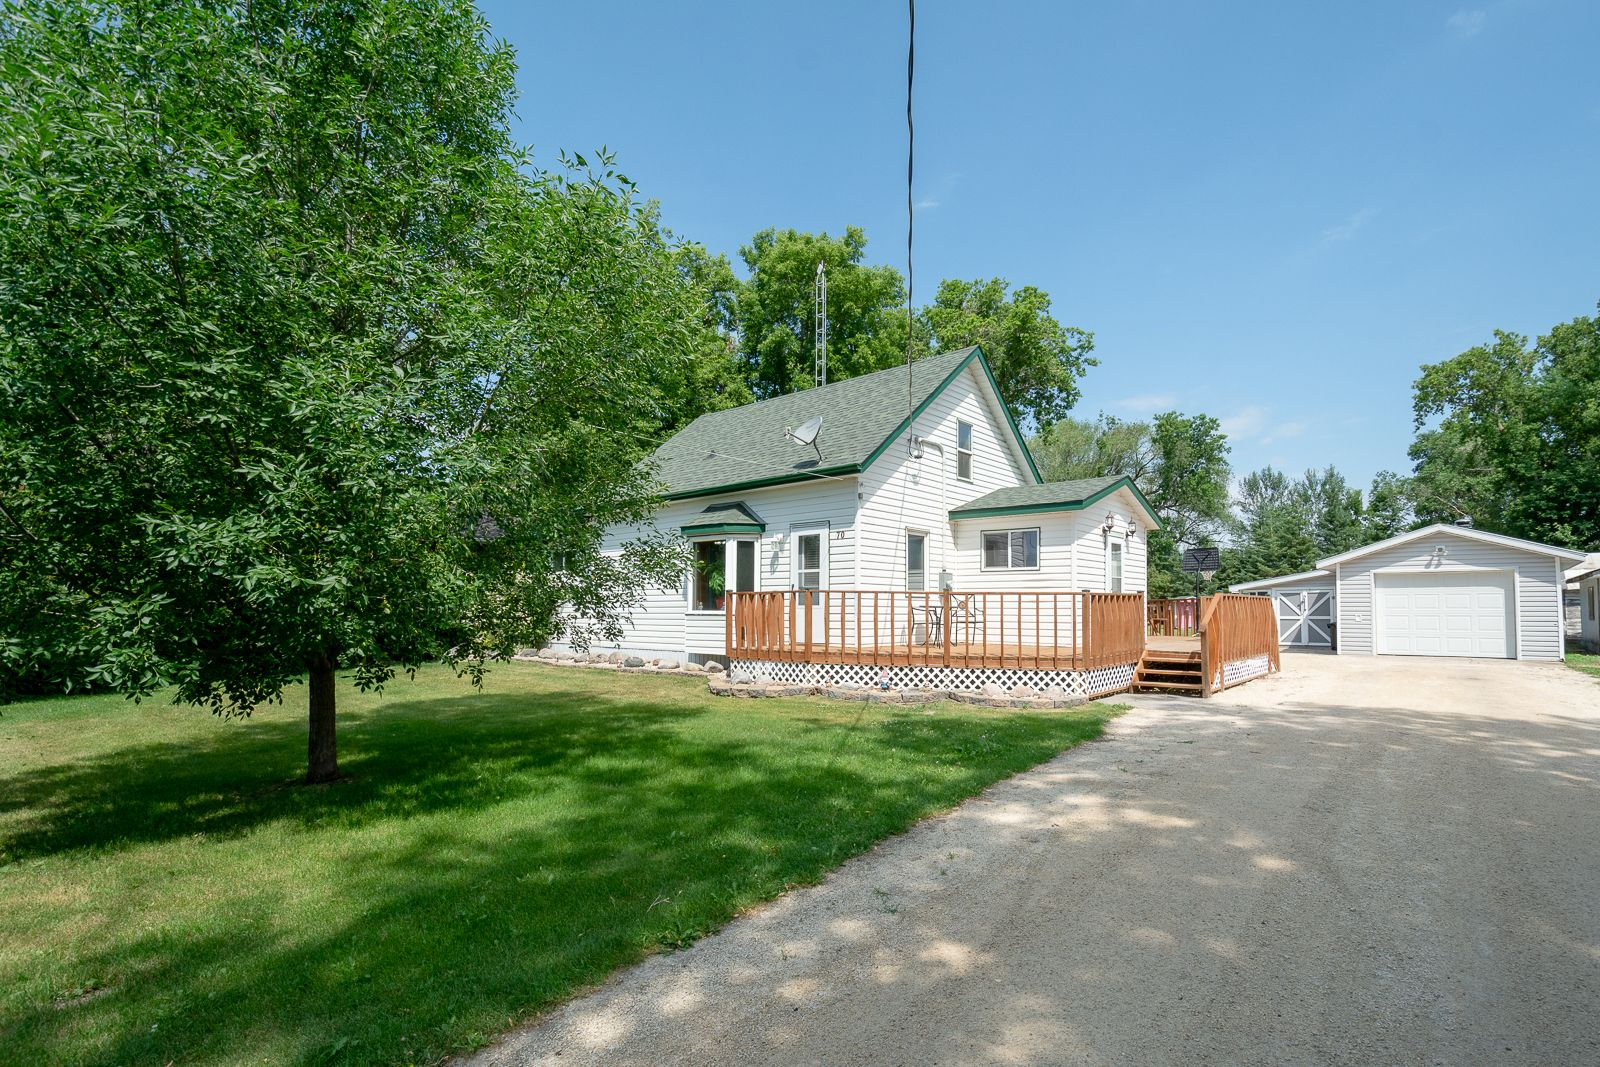 Main Photo: 70 Campbell Ave in High Bluff: House for sale : MLS®# 202116986